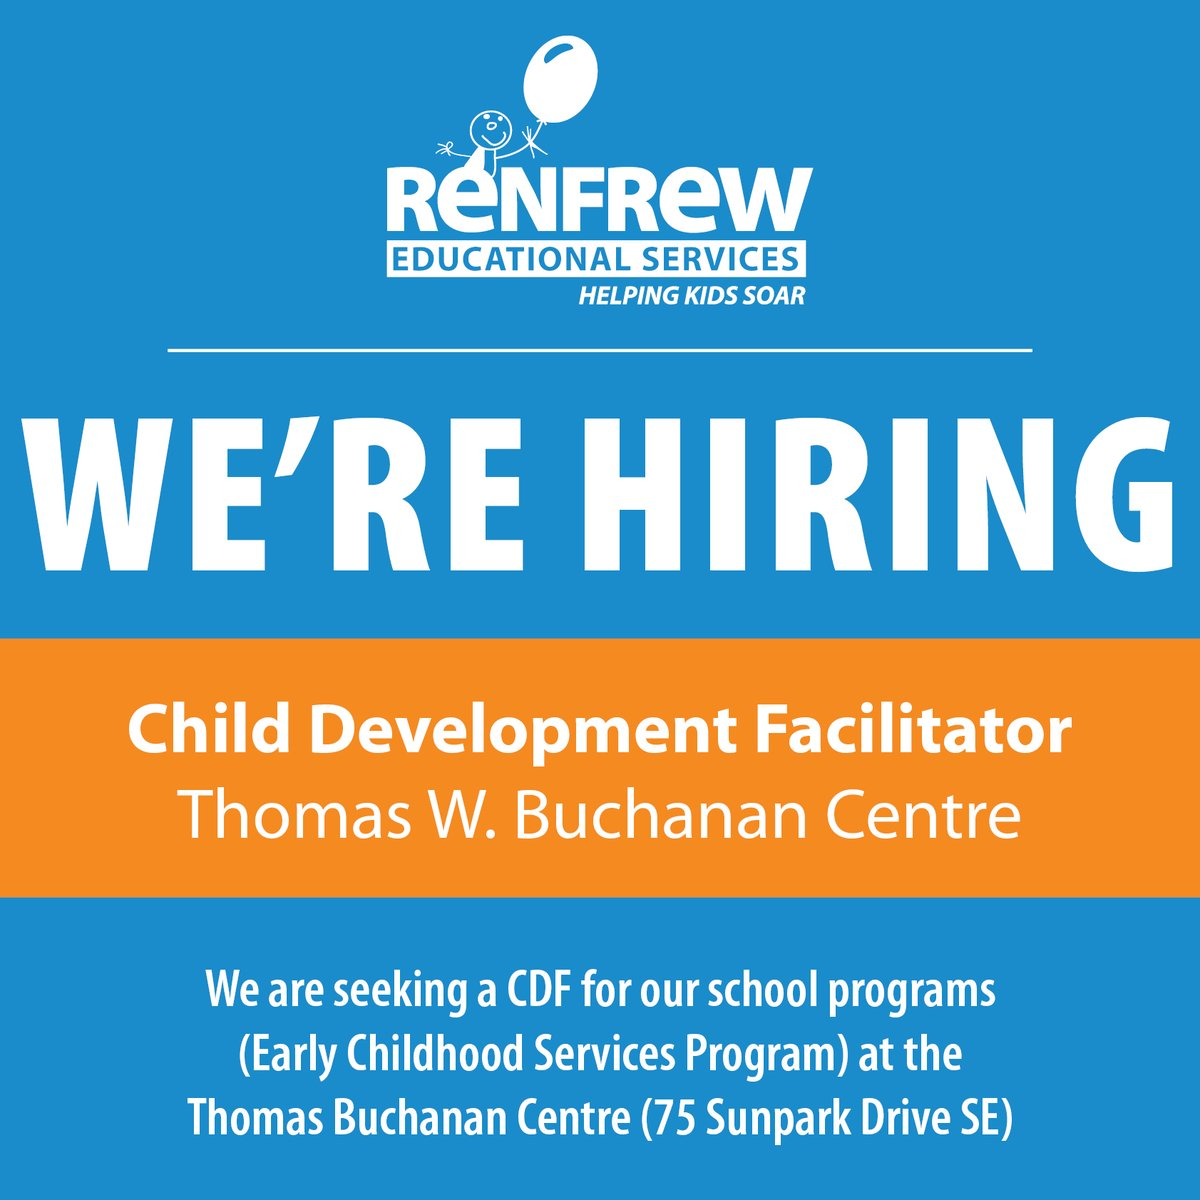 We're #Hiring! Apply to become a Child Development Facilitator at our Thomas W. Buchanan Centre or our Park Place Centre. You'll partner with teachers and the therapy team to facilitate daily classroom plans in an fun environment. #YYCJobs  Visit